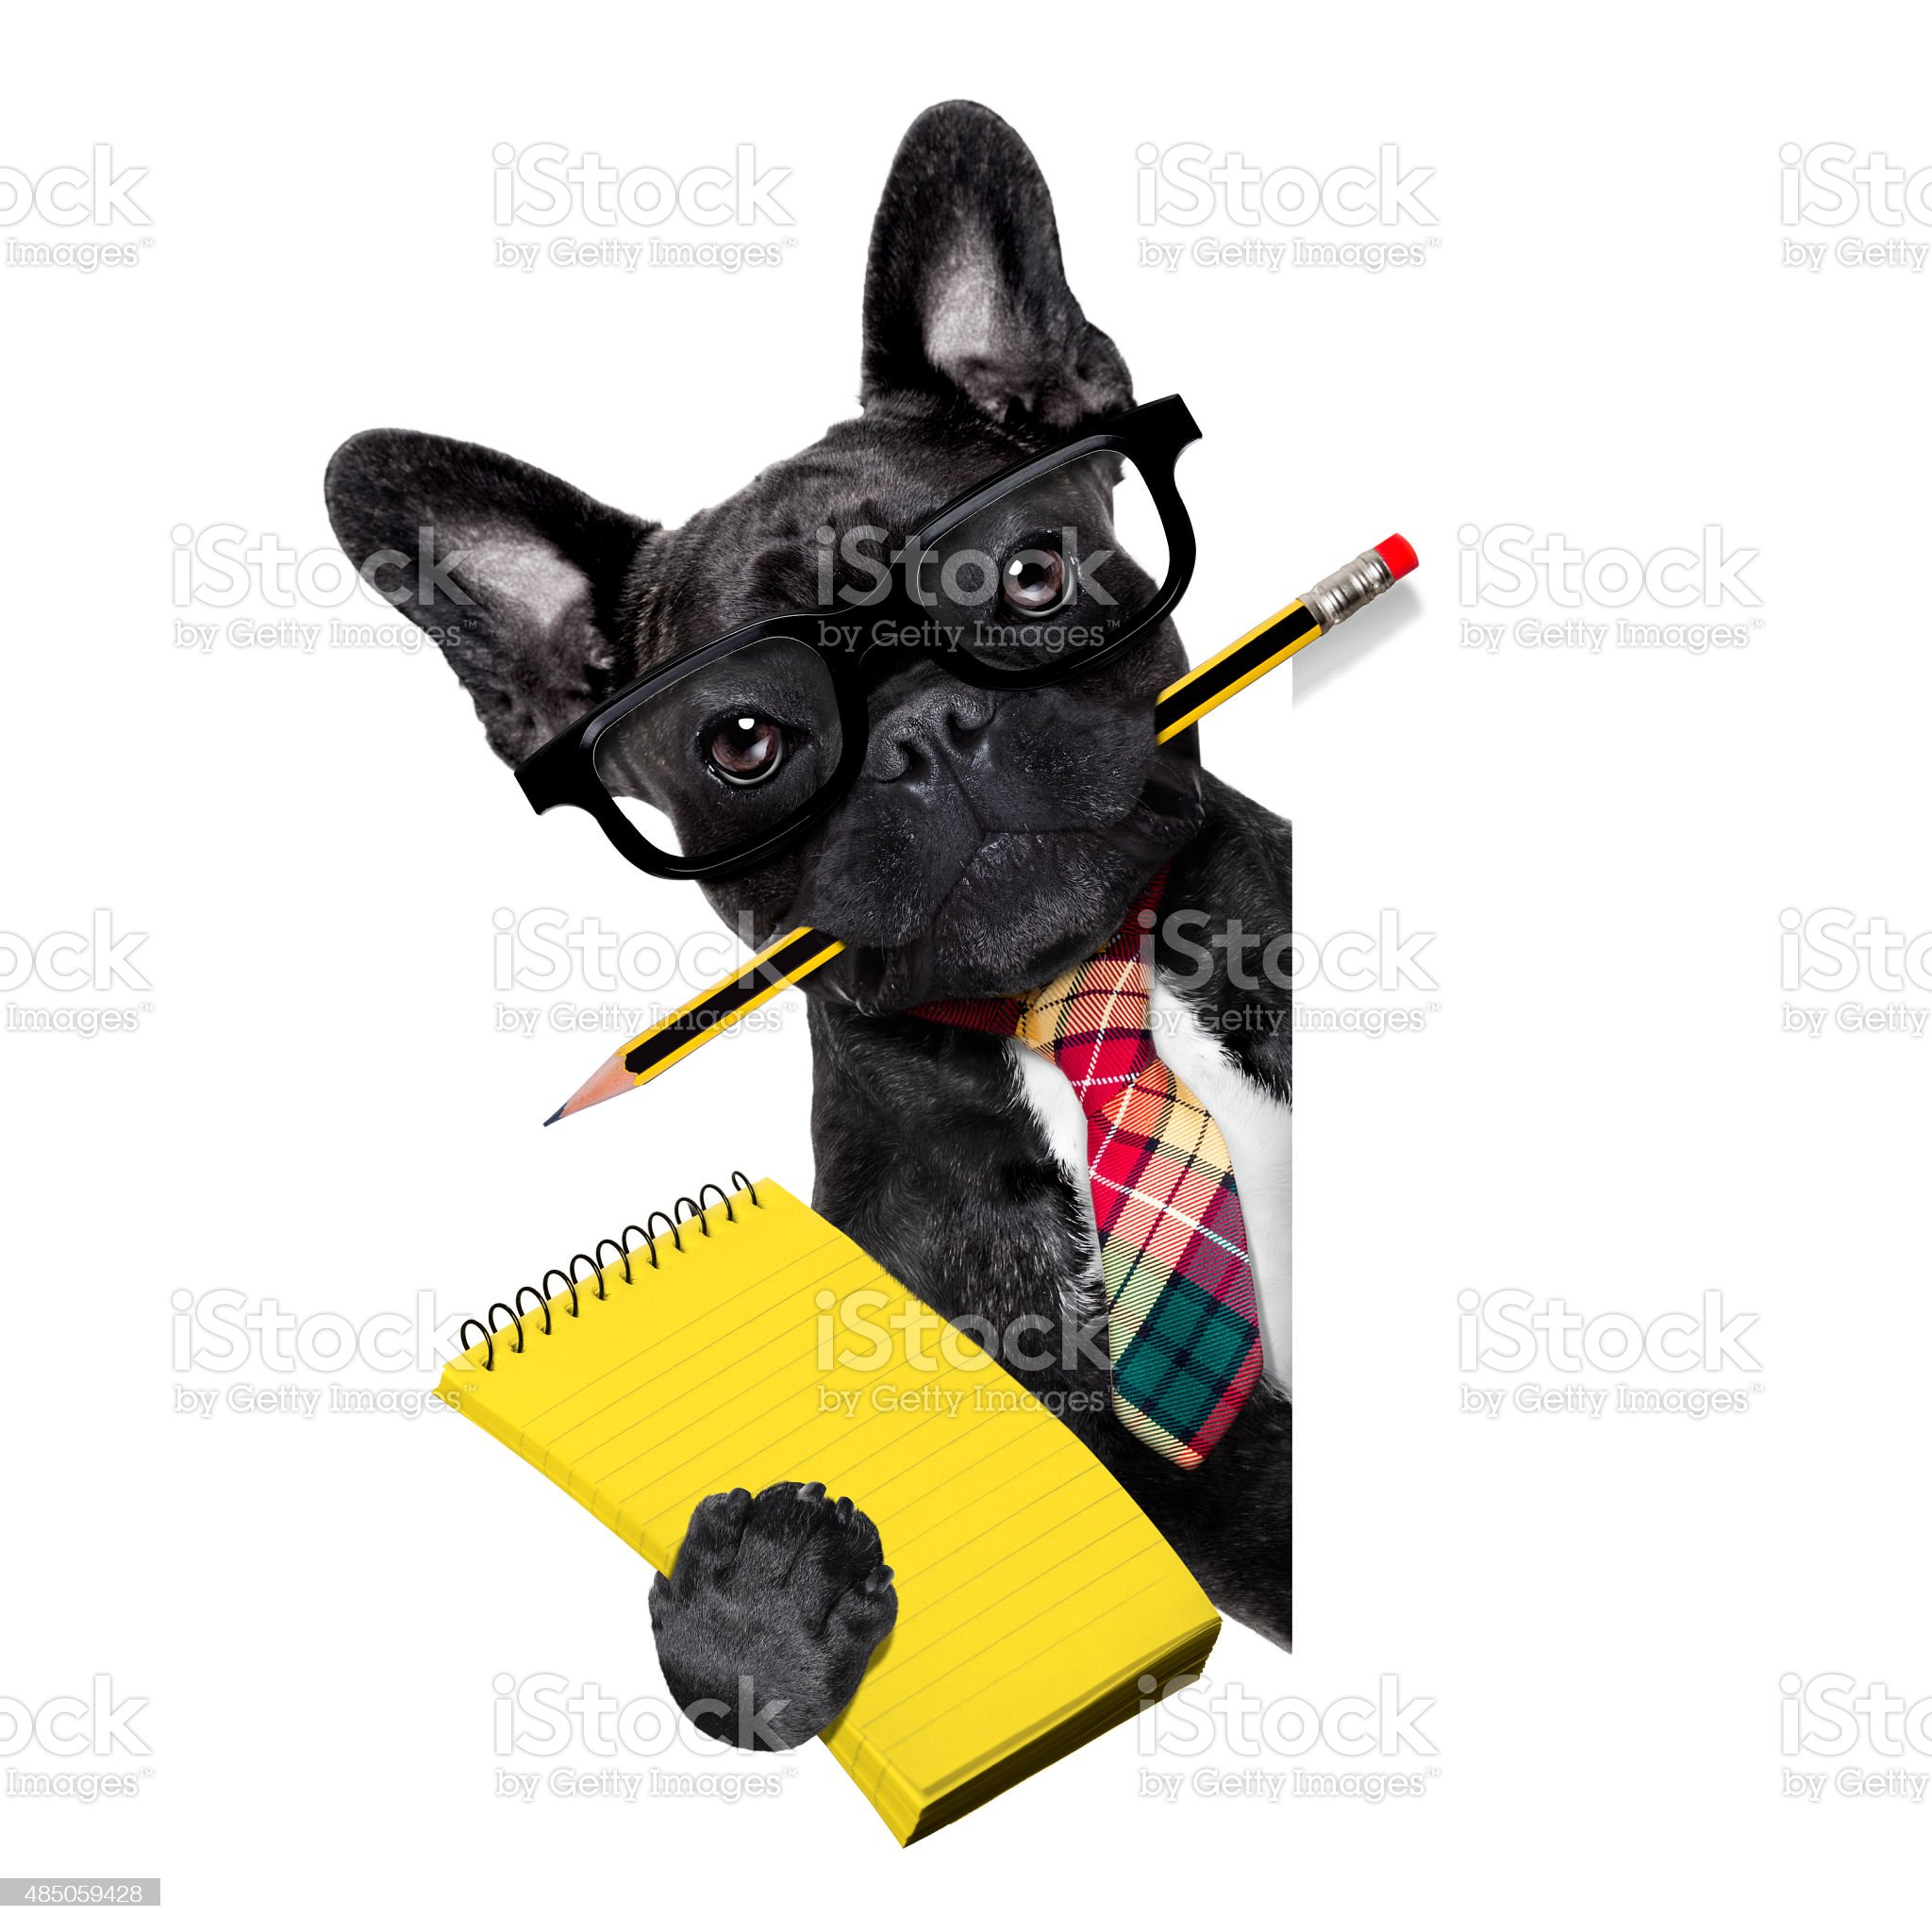 office worker dog royalty-free stock photo